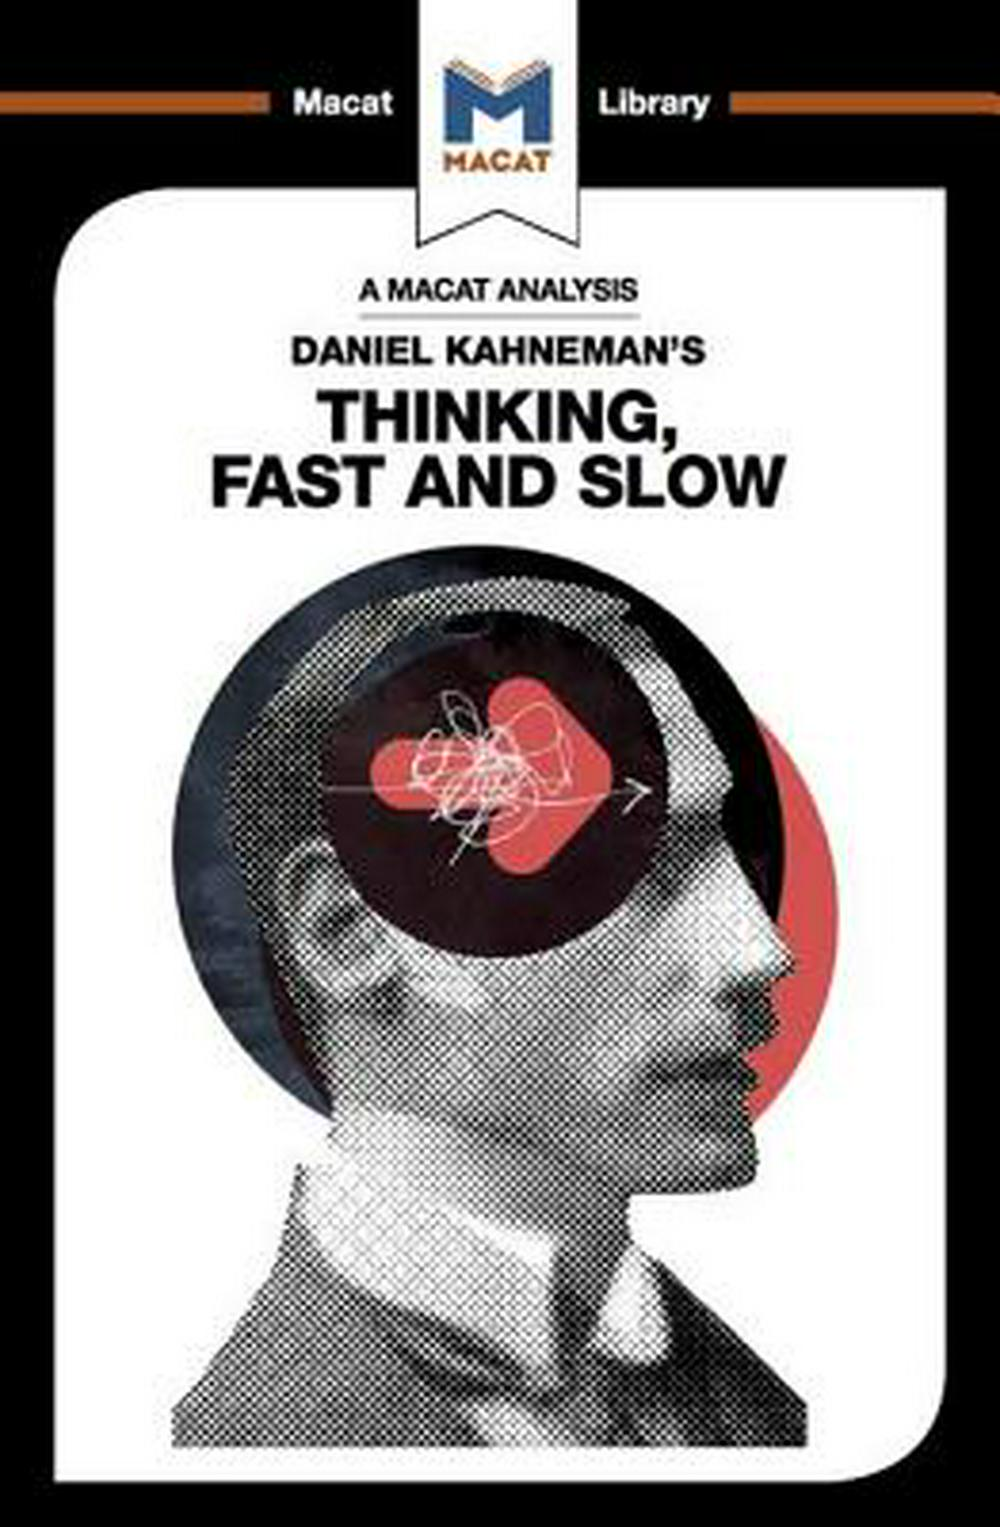 Daniel Kahneman's Thinking, Fast and SlowThe Macat Library